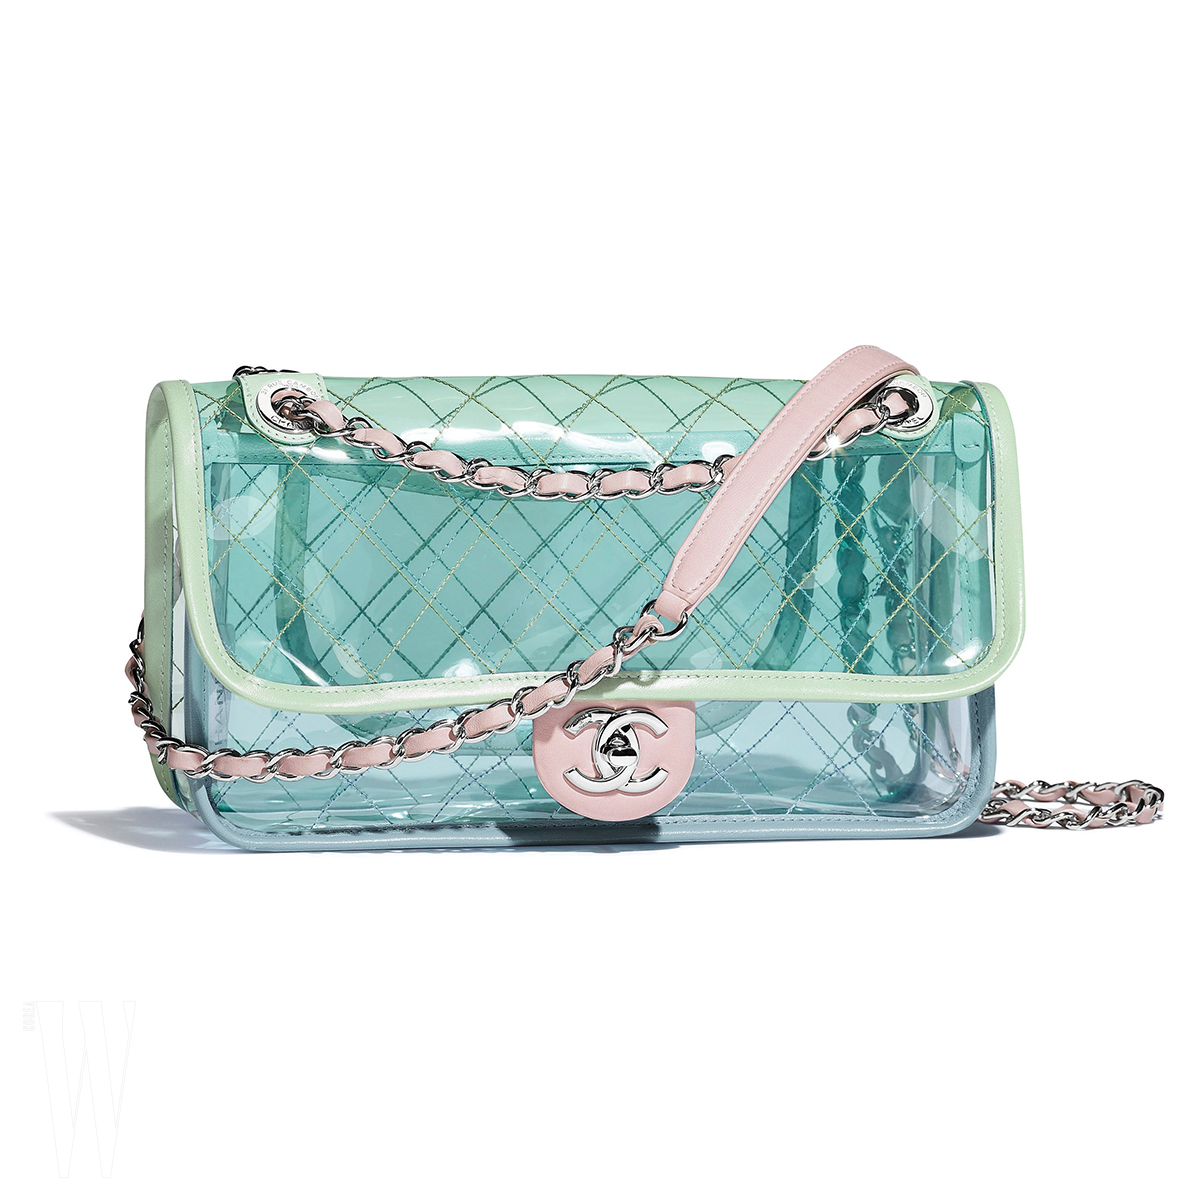 A57409-Y83559-C2488 Multicoloured bag in PVC and leather